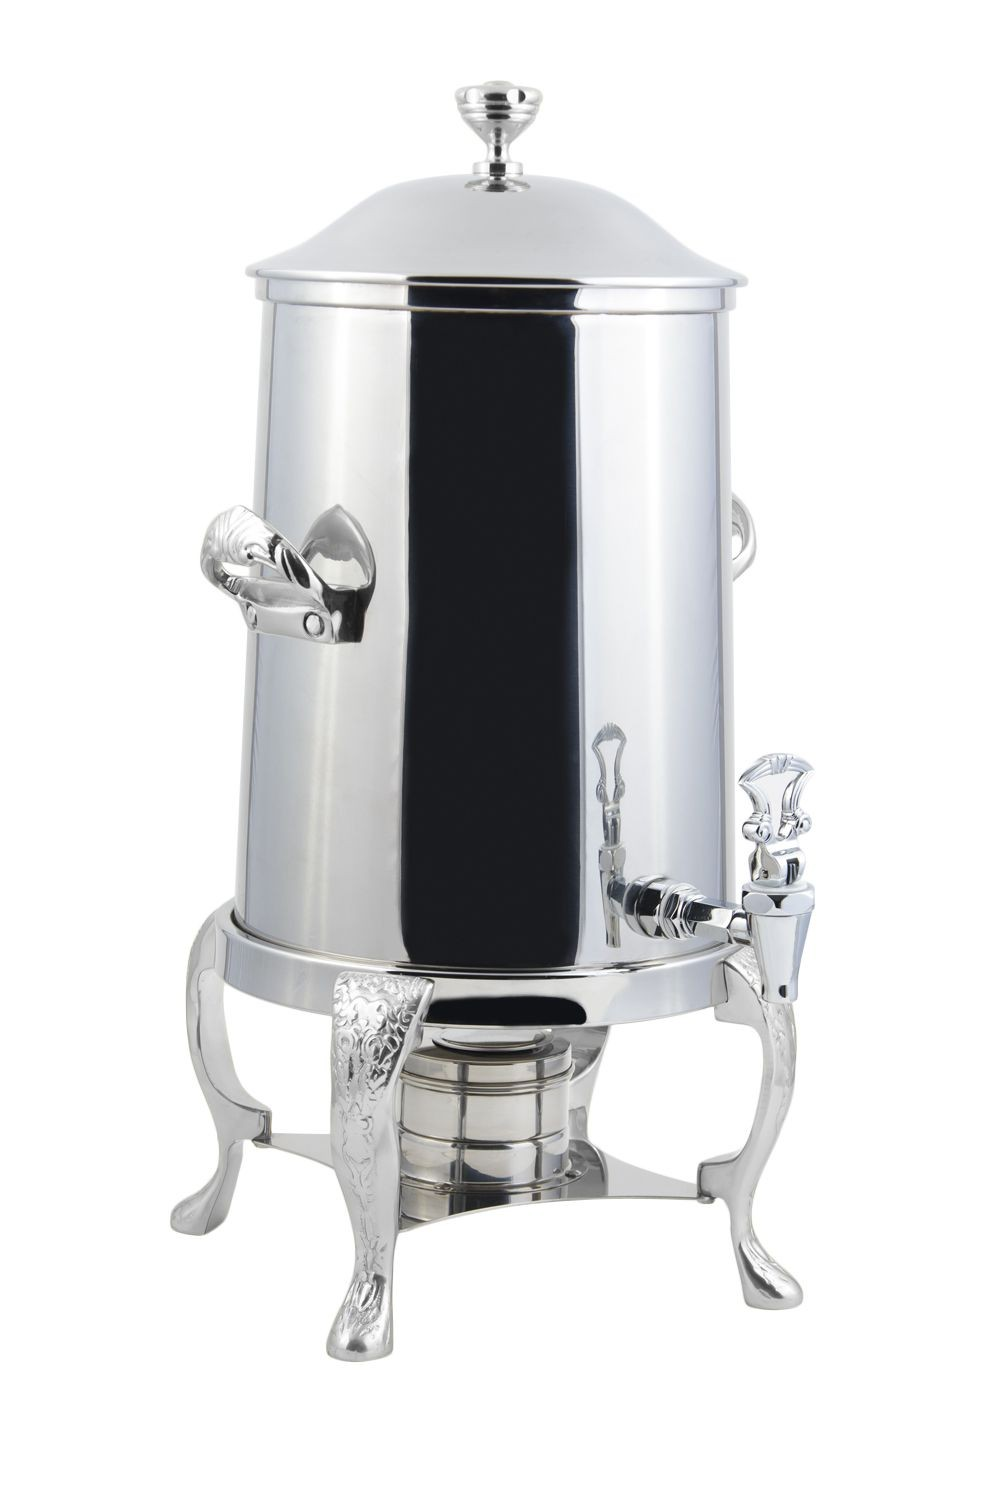 Bon Chef 47101C Renaissance Non-Insulated Coffee Urn with Chrome Trim, 2 Gallon